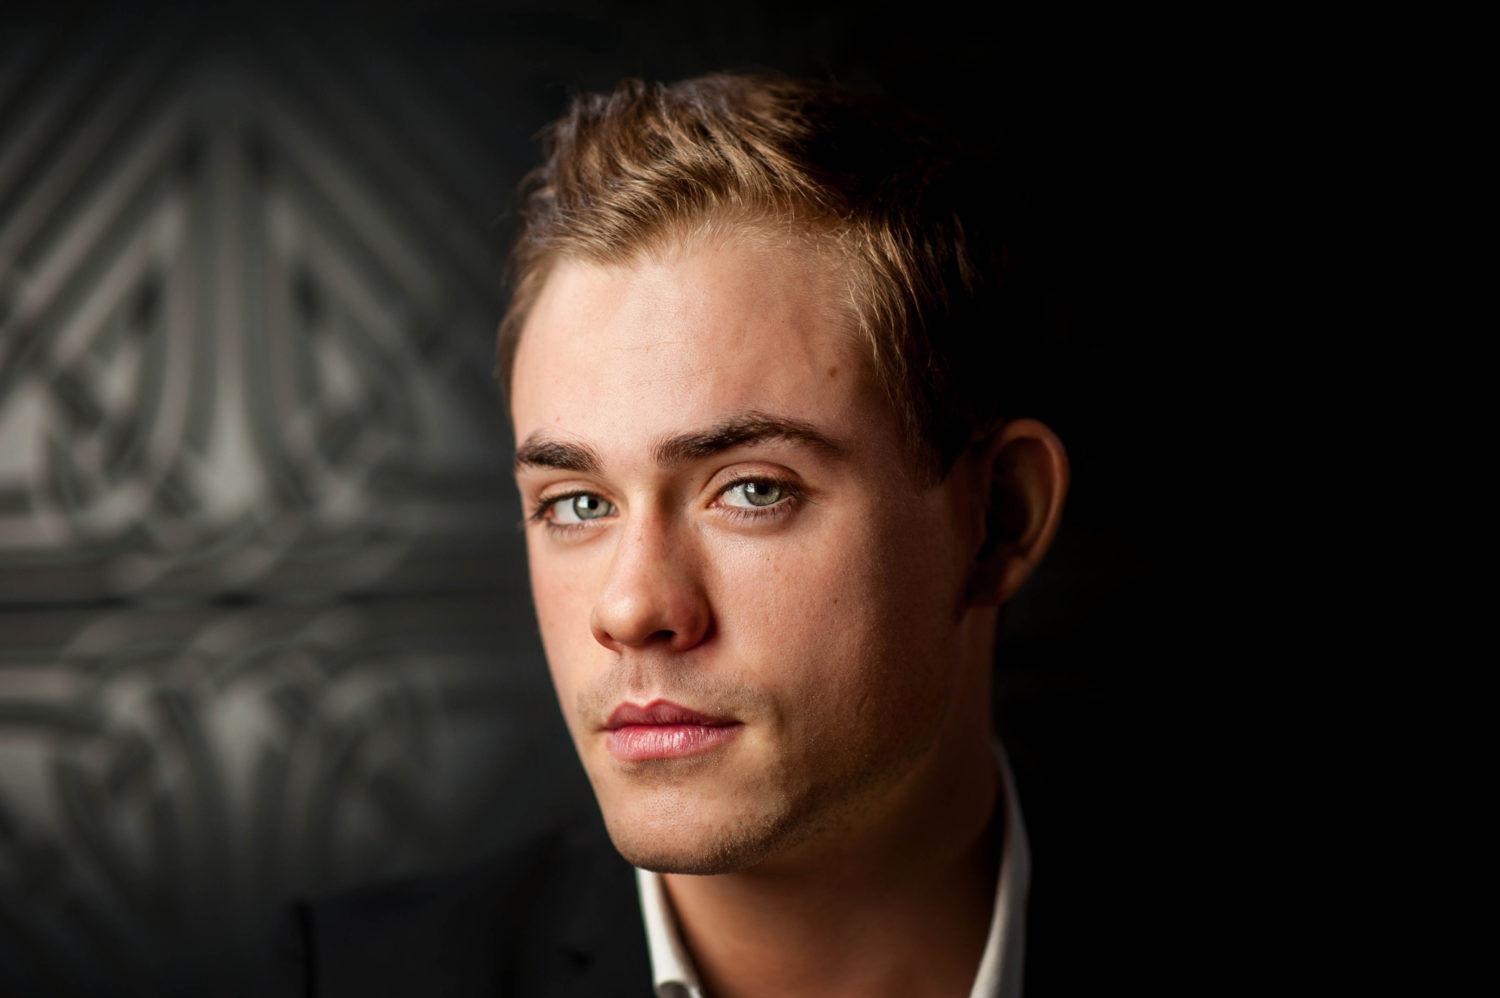 A young man with blond hair and blue eyes wearing a black suit